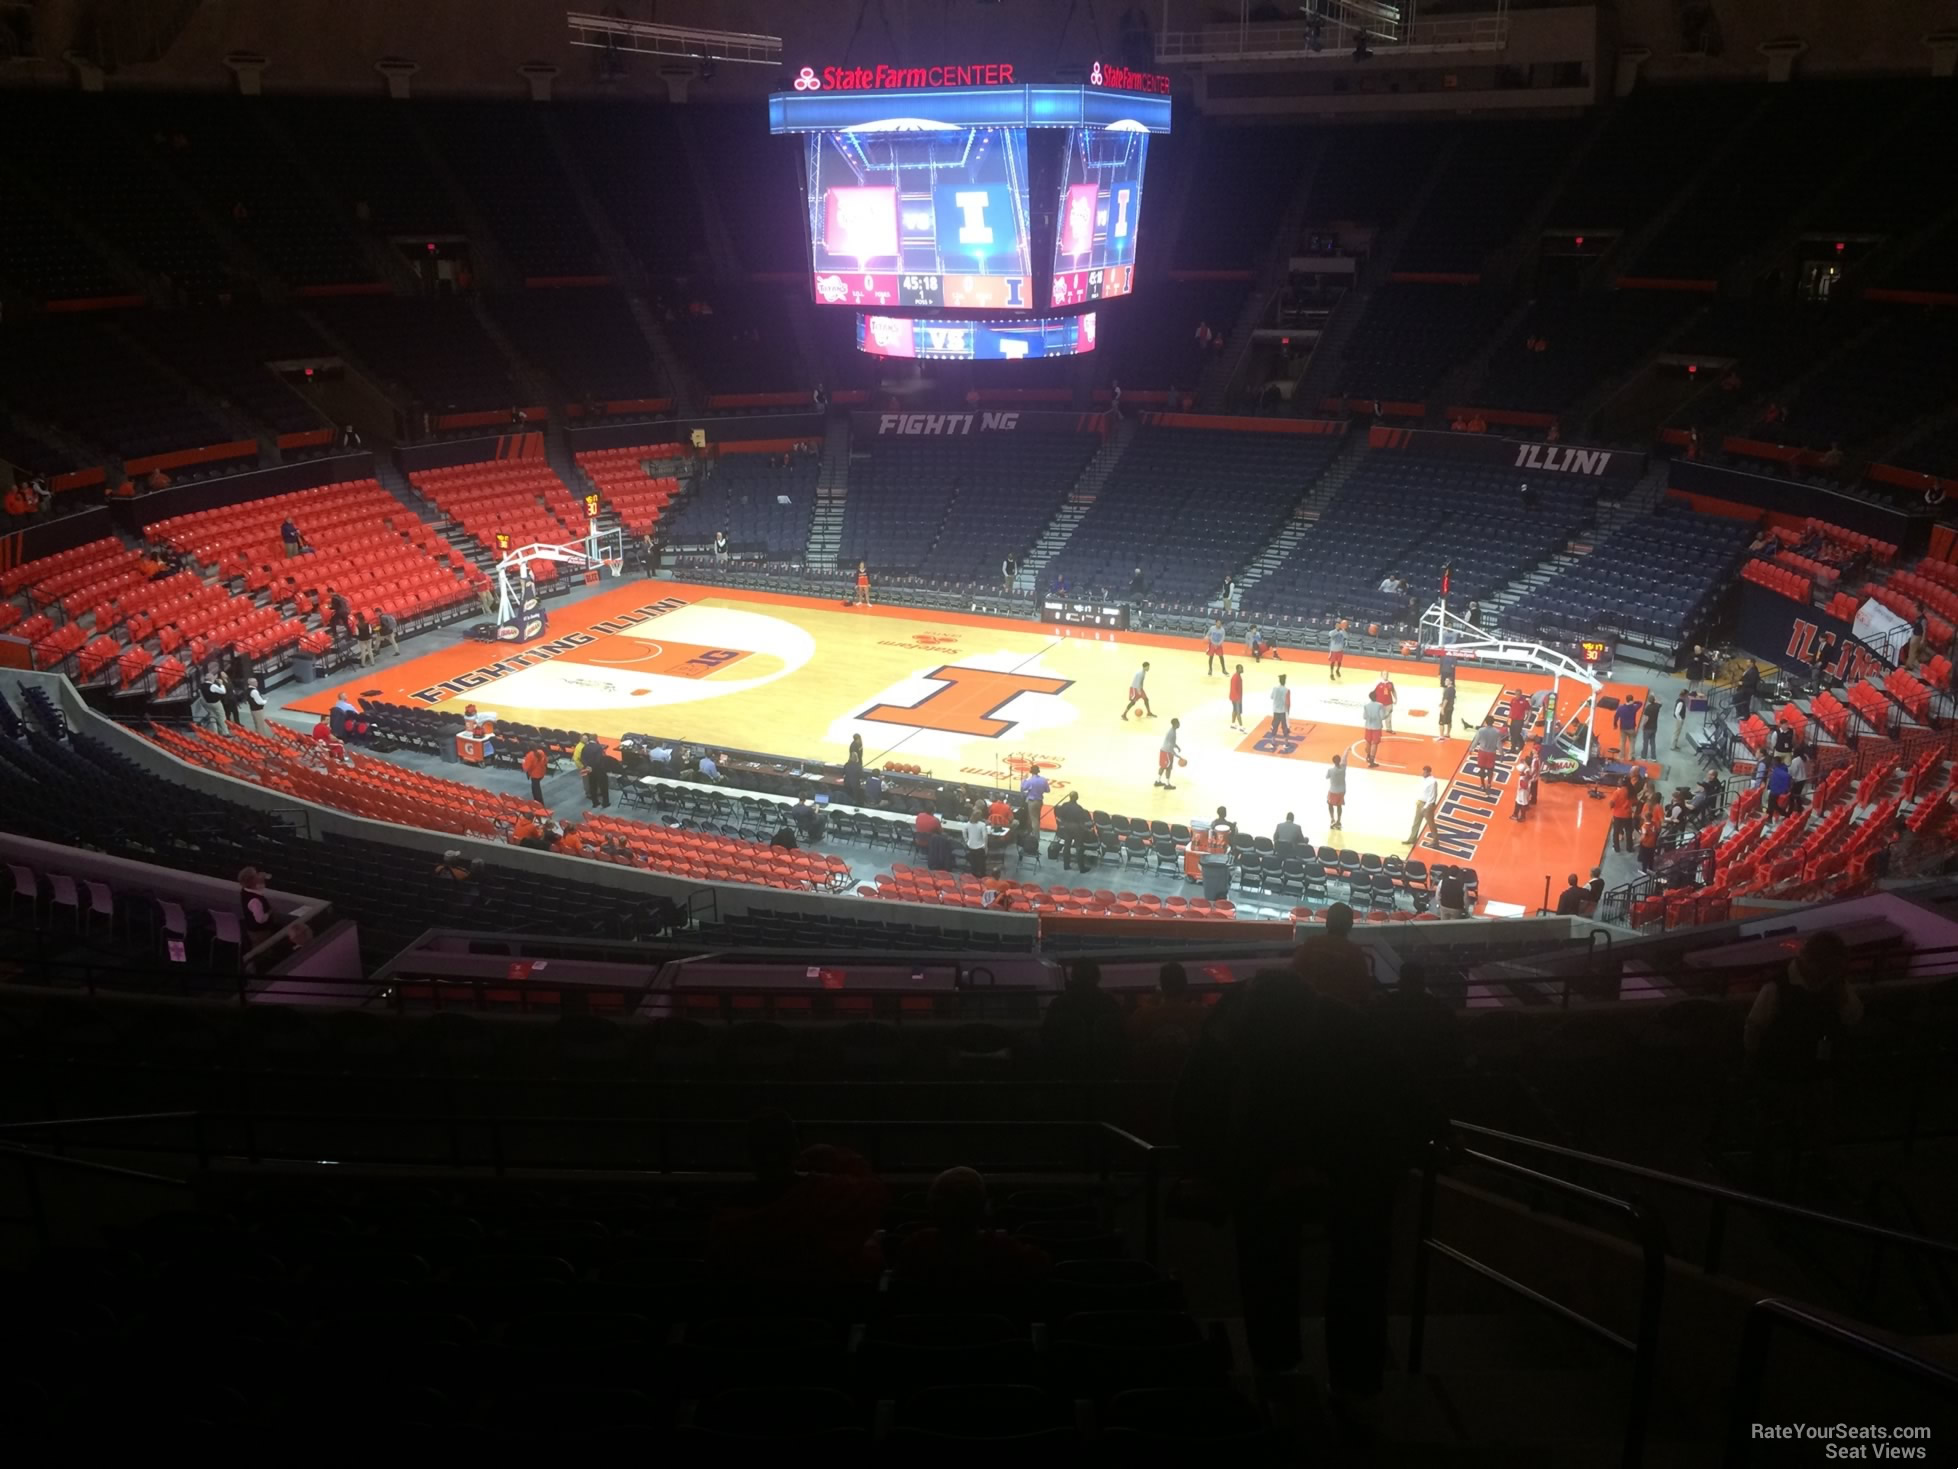 Seat View for State Farm Center Section 222, Row 10